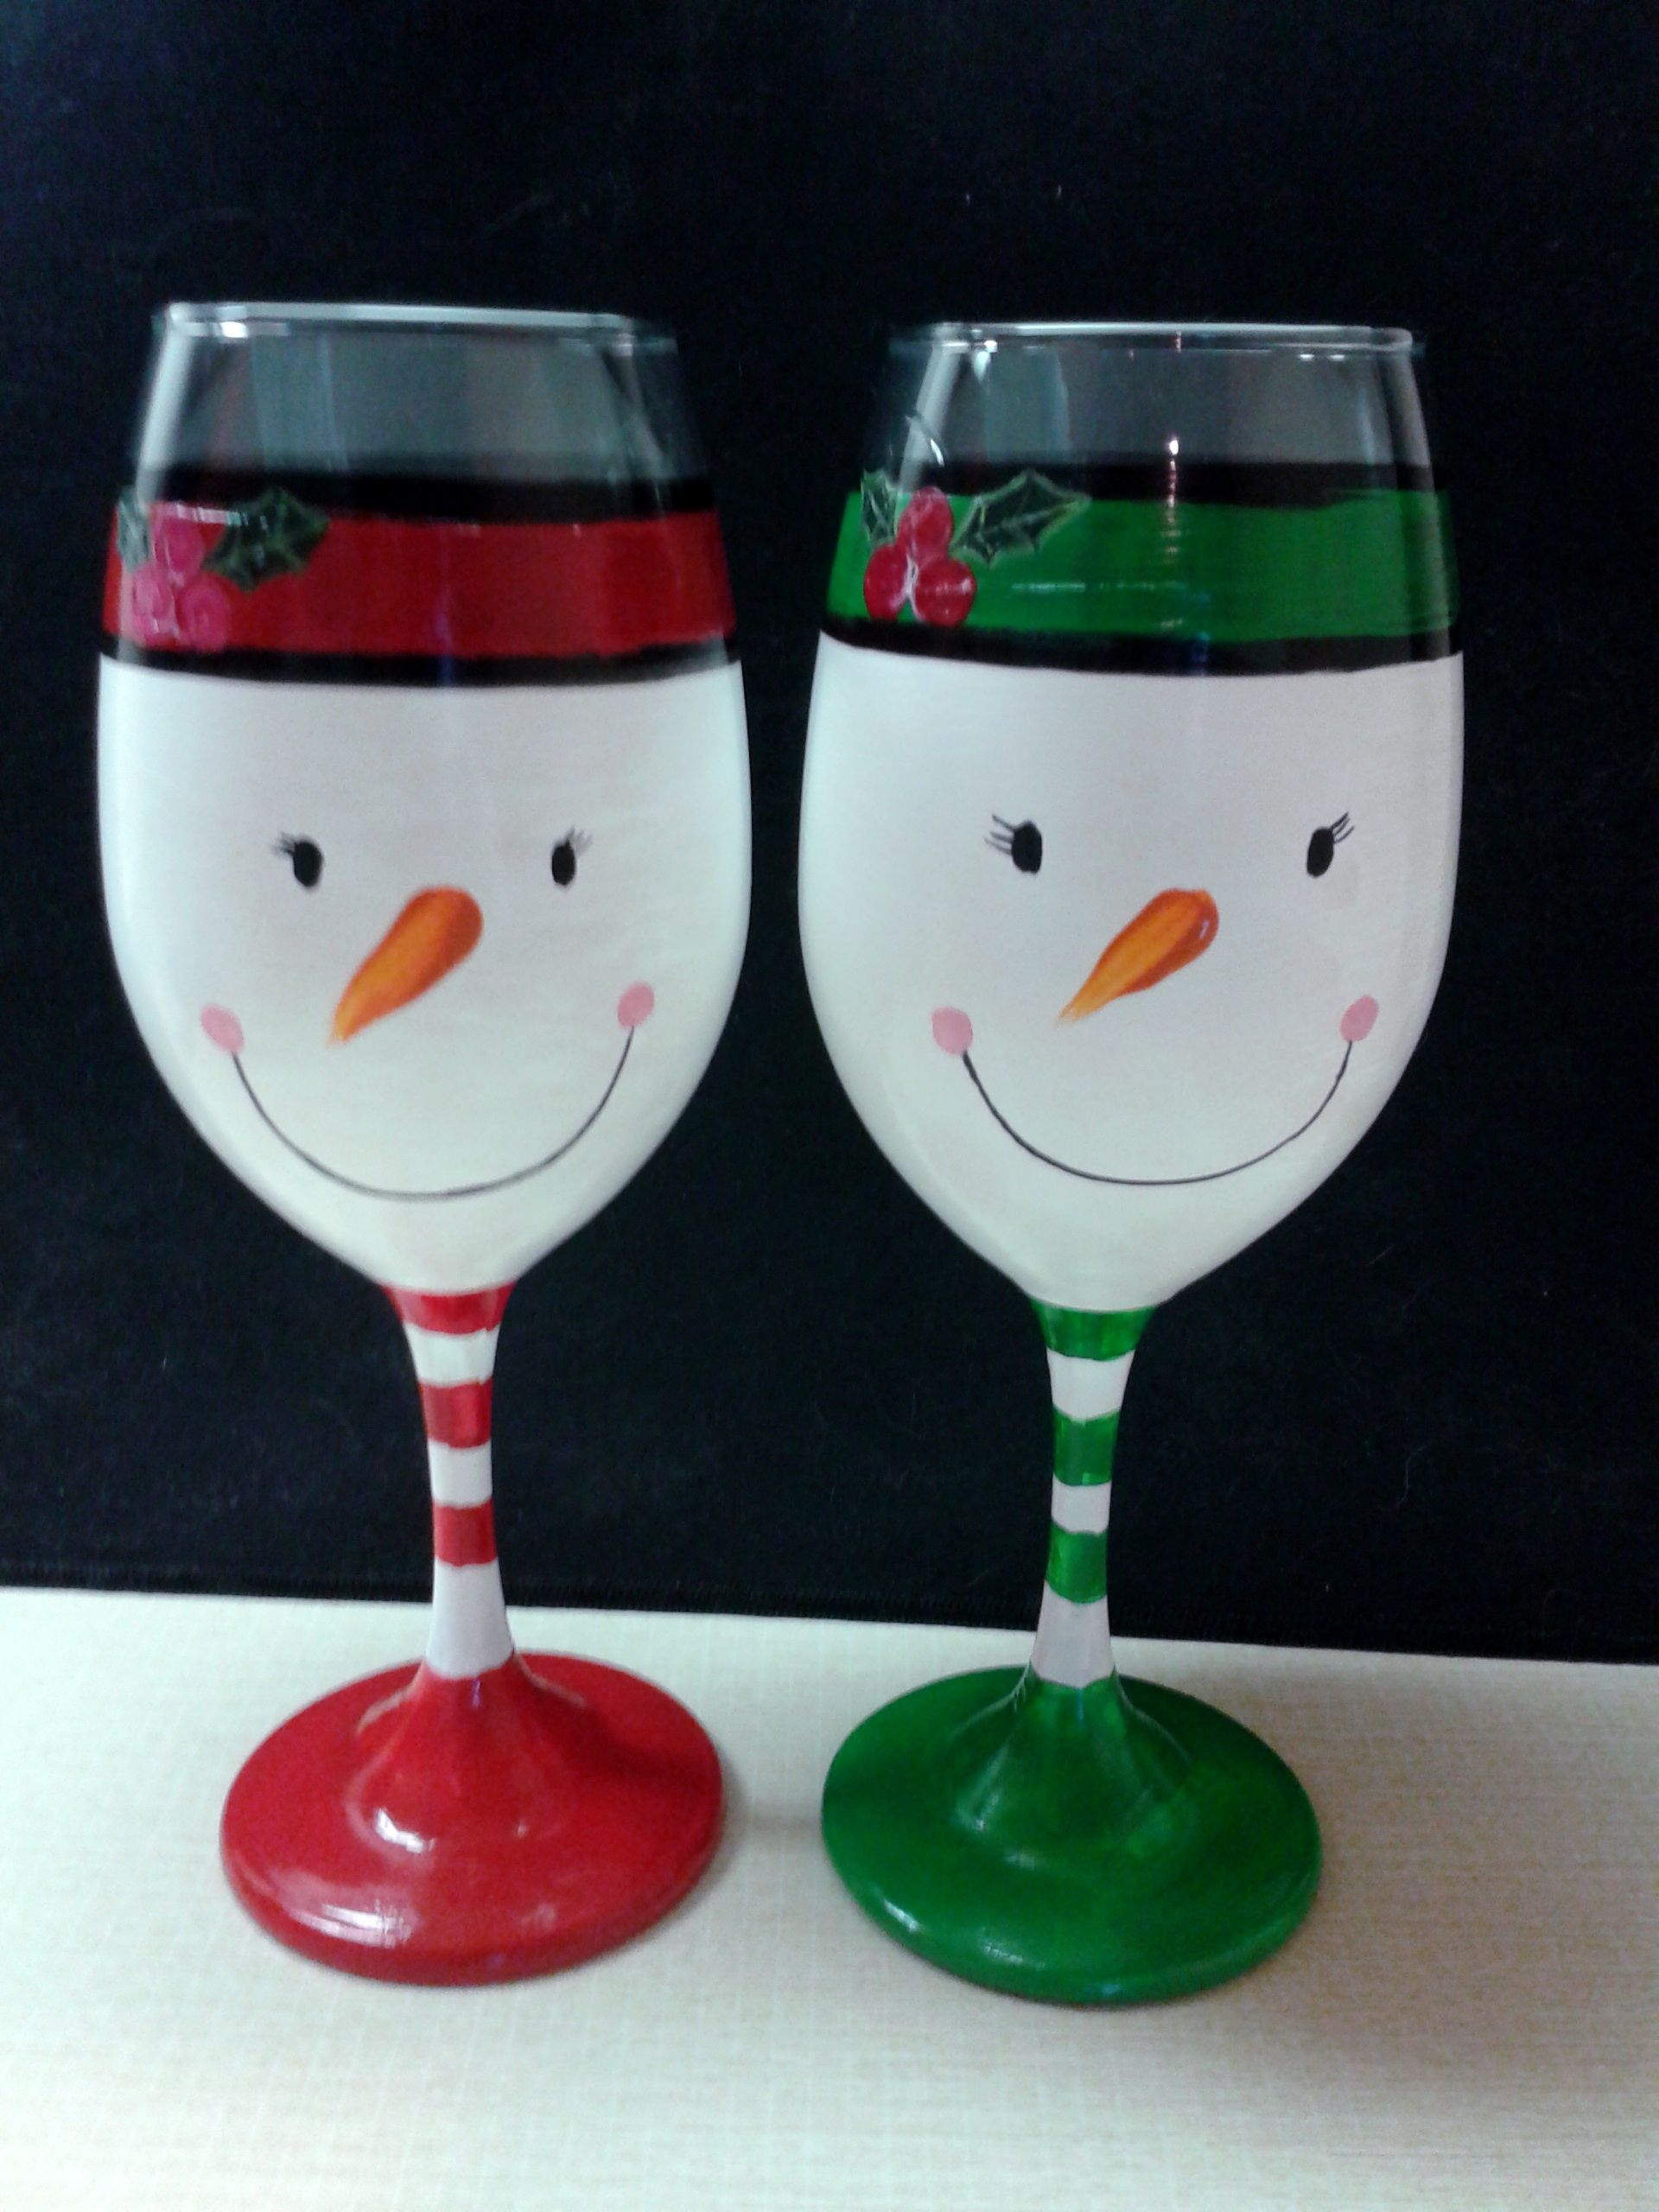 Snowman painted wine glasses artwork for diy pinterest snowman